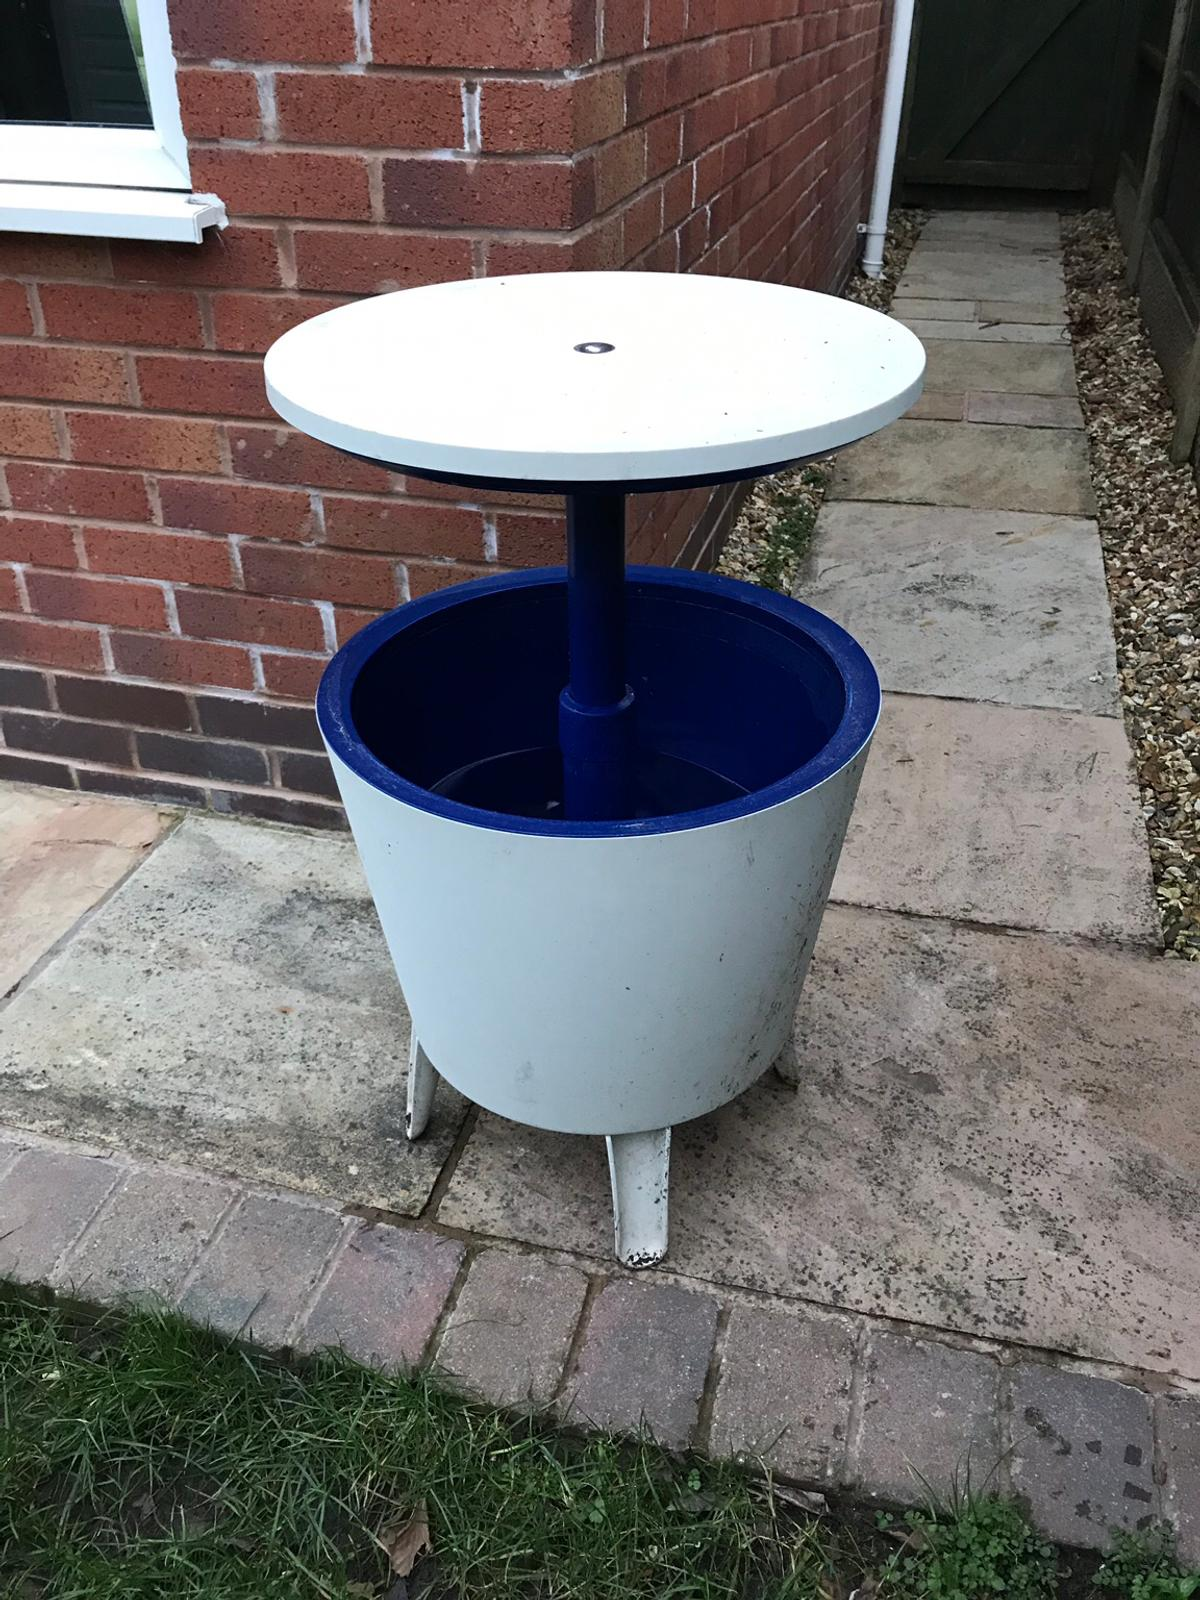 Costco drinks cooler and table in Wigan for £20.00 for sale | Shpock